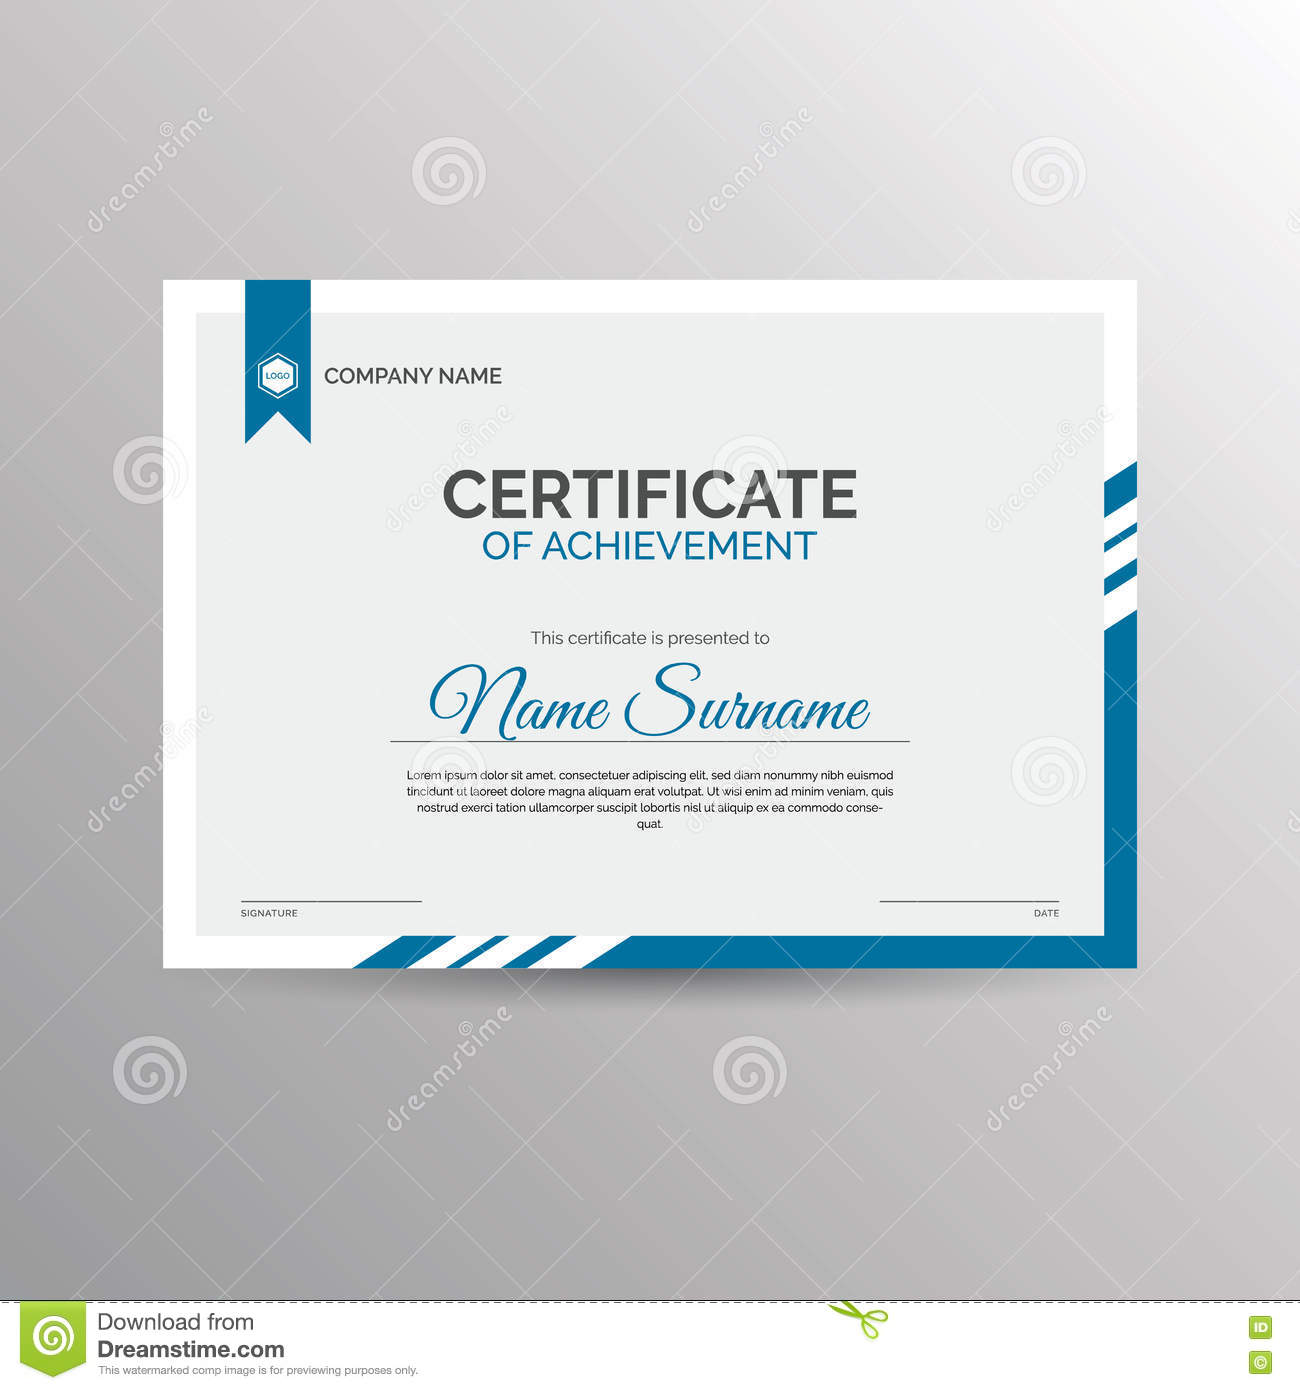 Certificate Of Achievement Template Stock Image Image Of Achieve